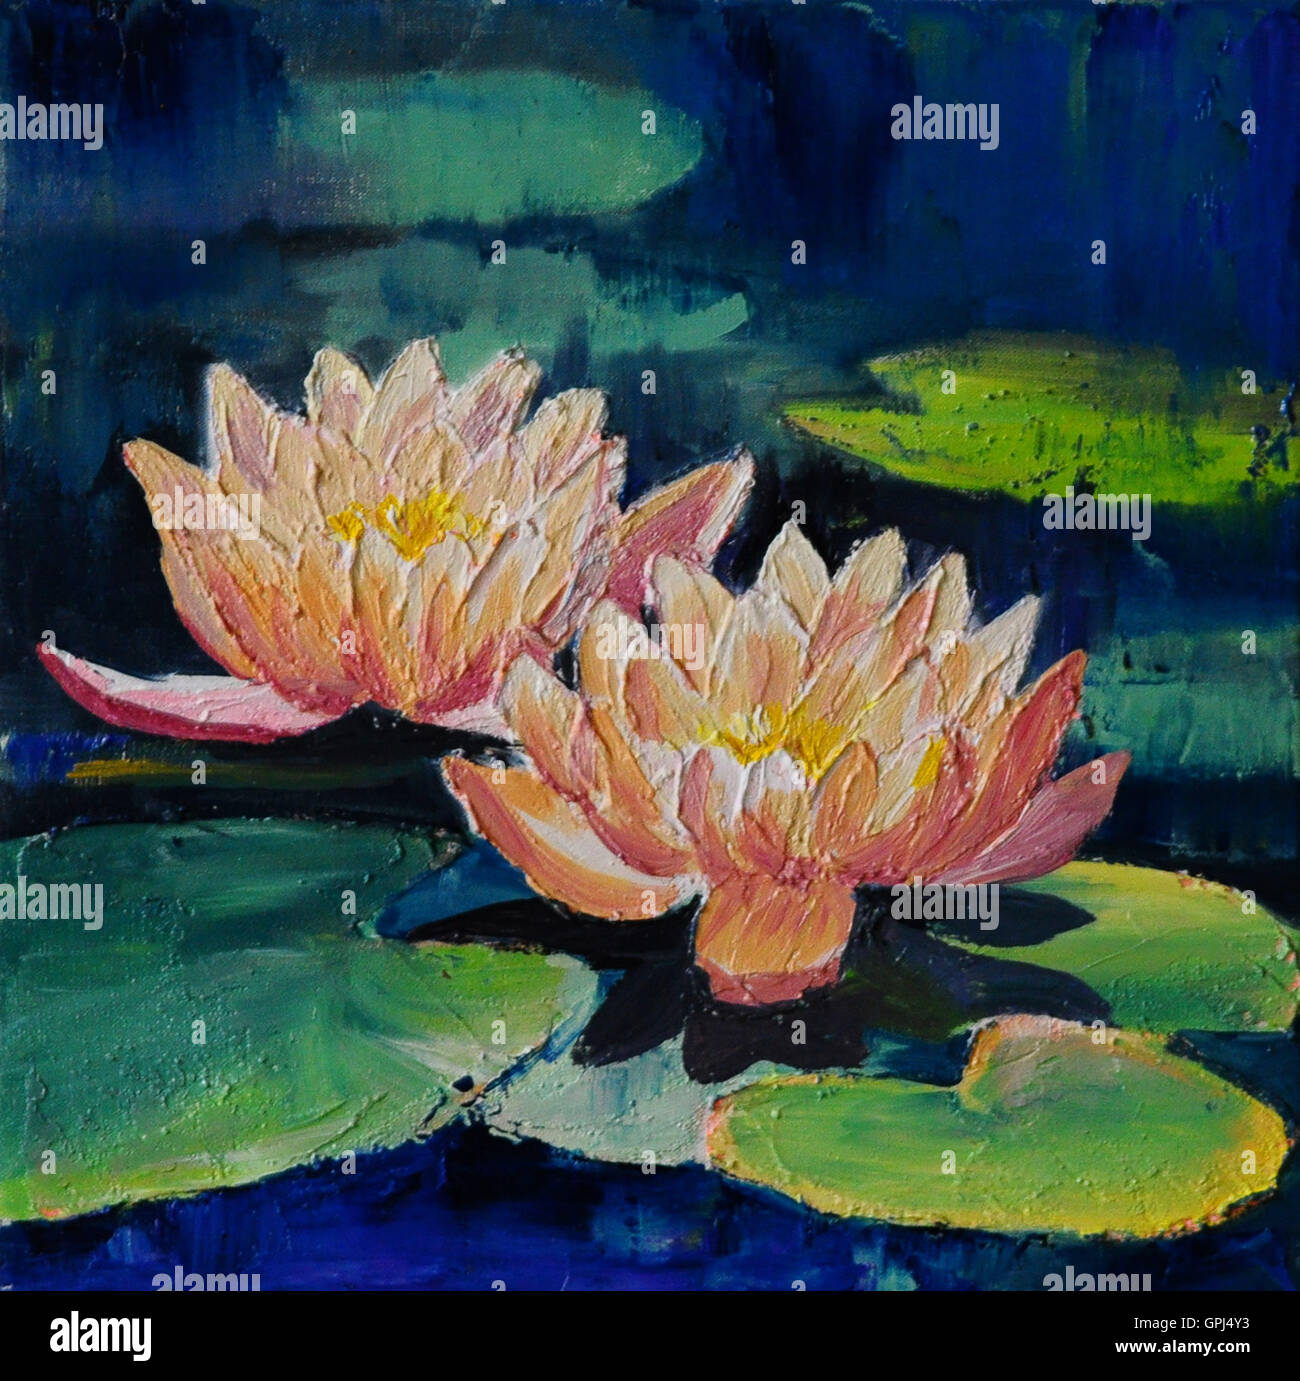 Oil painting lotus flower abstract drawing made in the style of oil painting lotus flower abstract drawing made in the style of impressionism mightylinksfo